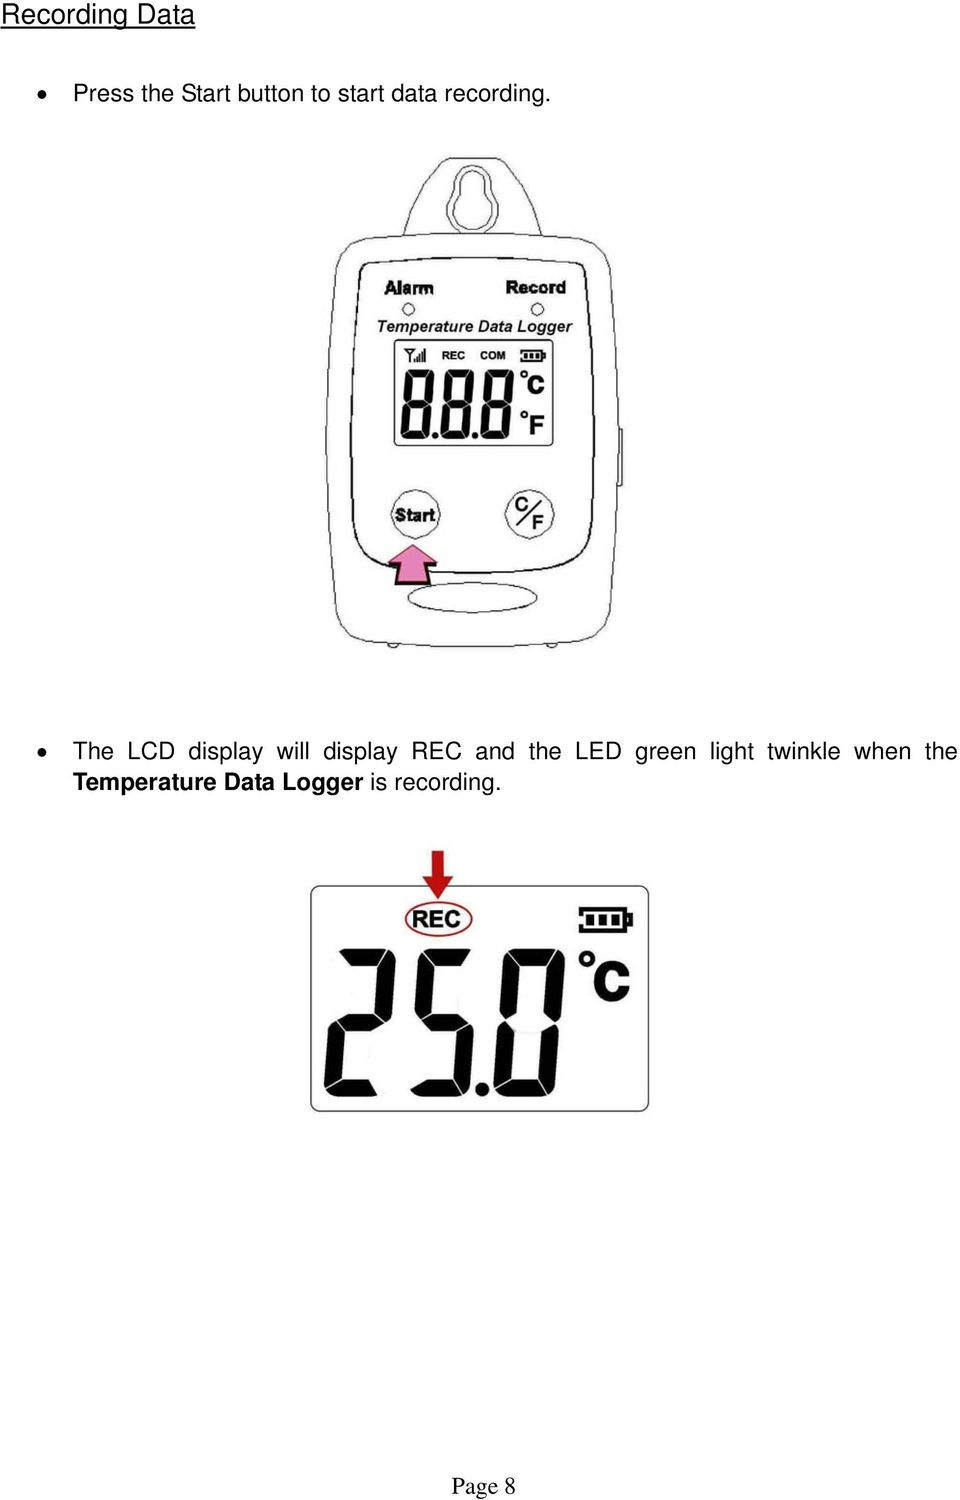 The LCD display will display REC and the LED